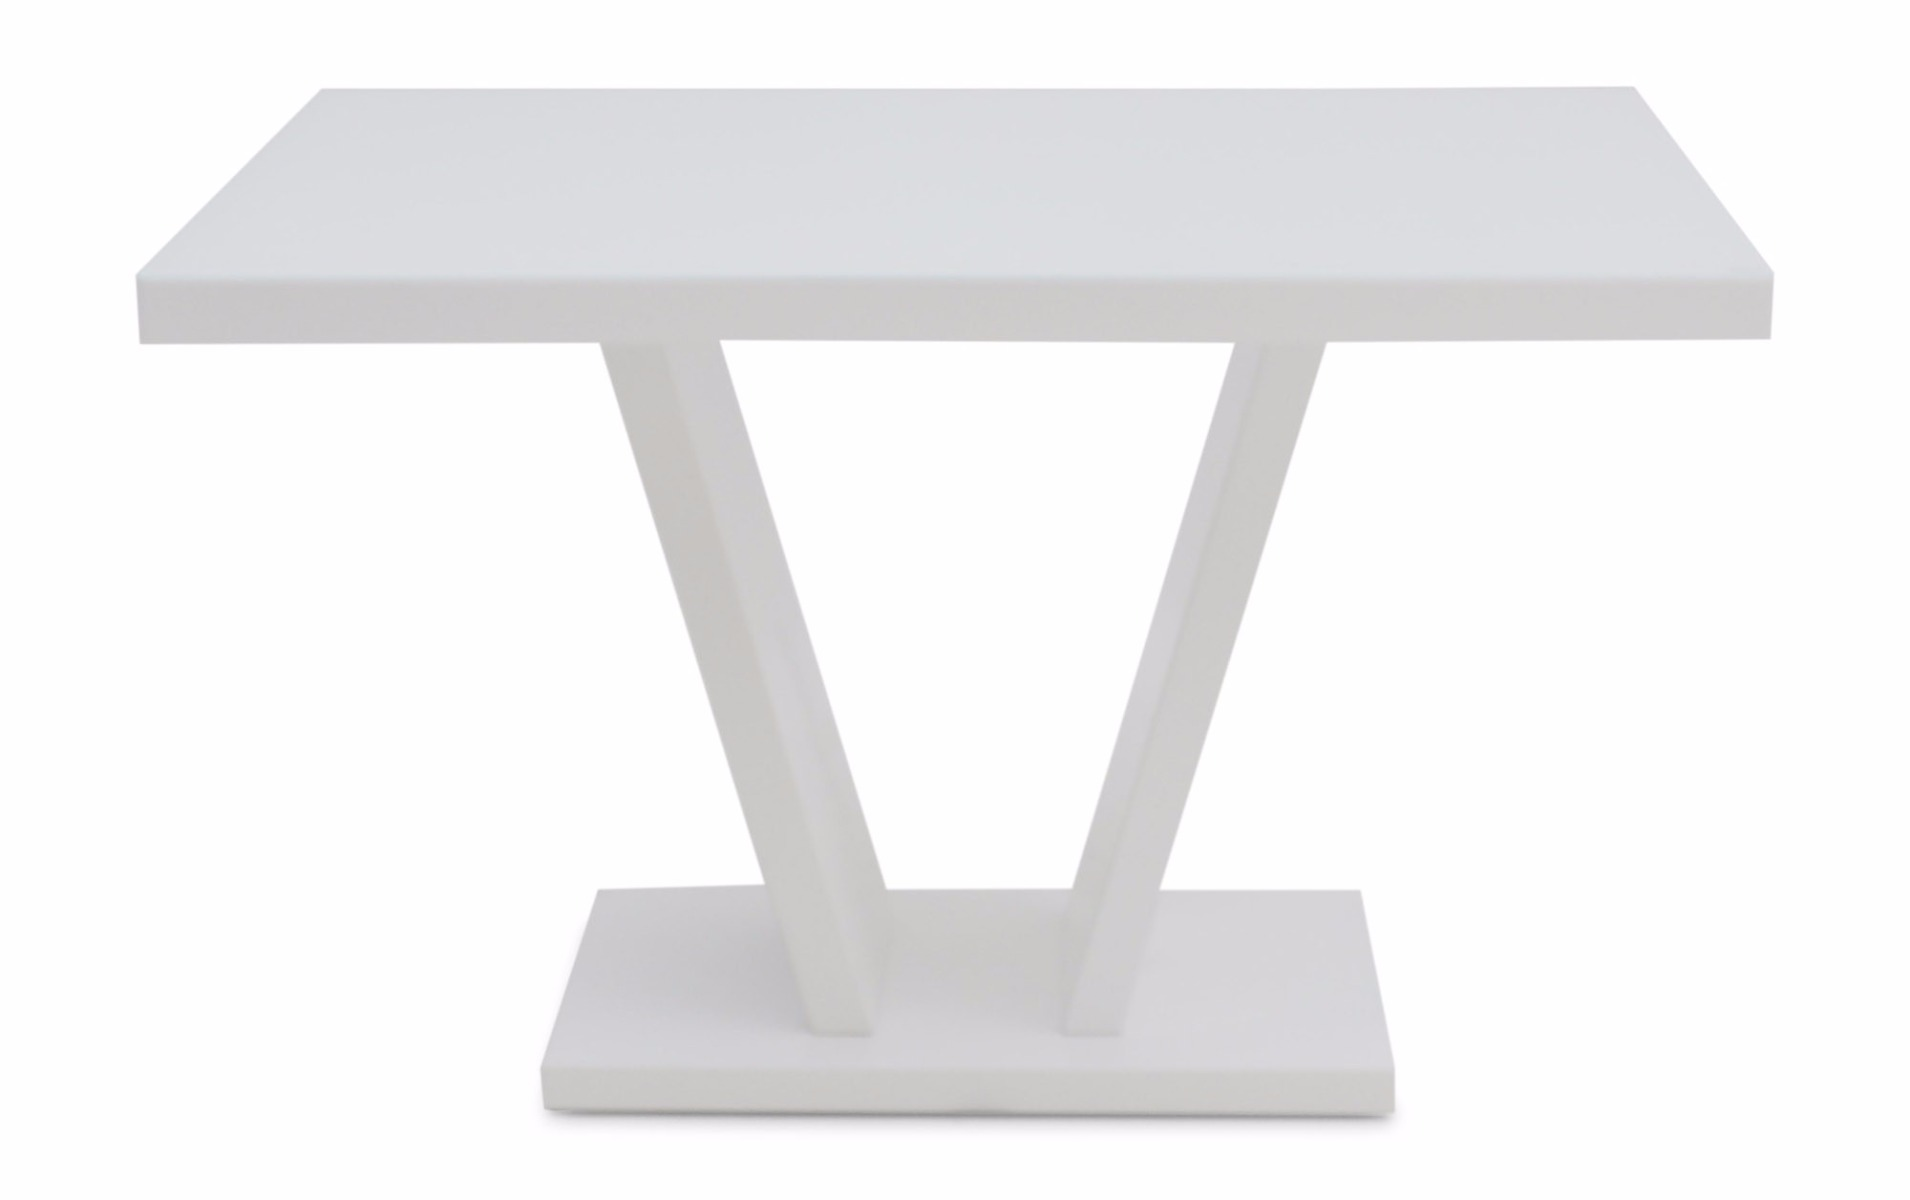 https://www.firstfurniture.co.uk/pub/media/catalog/product/f/a/fairmont_valentino_white_high_gloss_dining_table_1_2.jpg